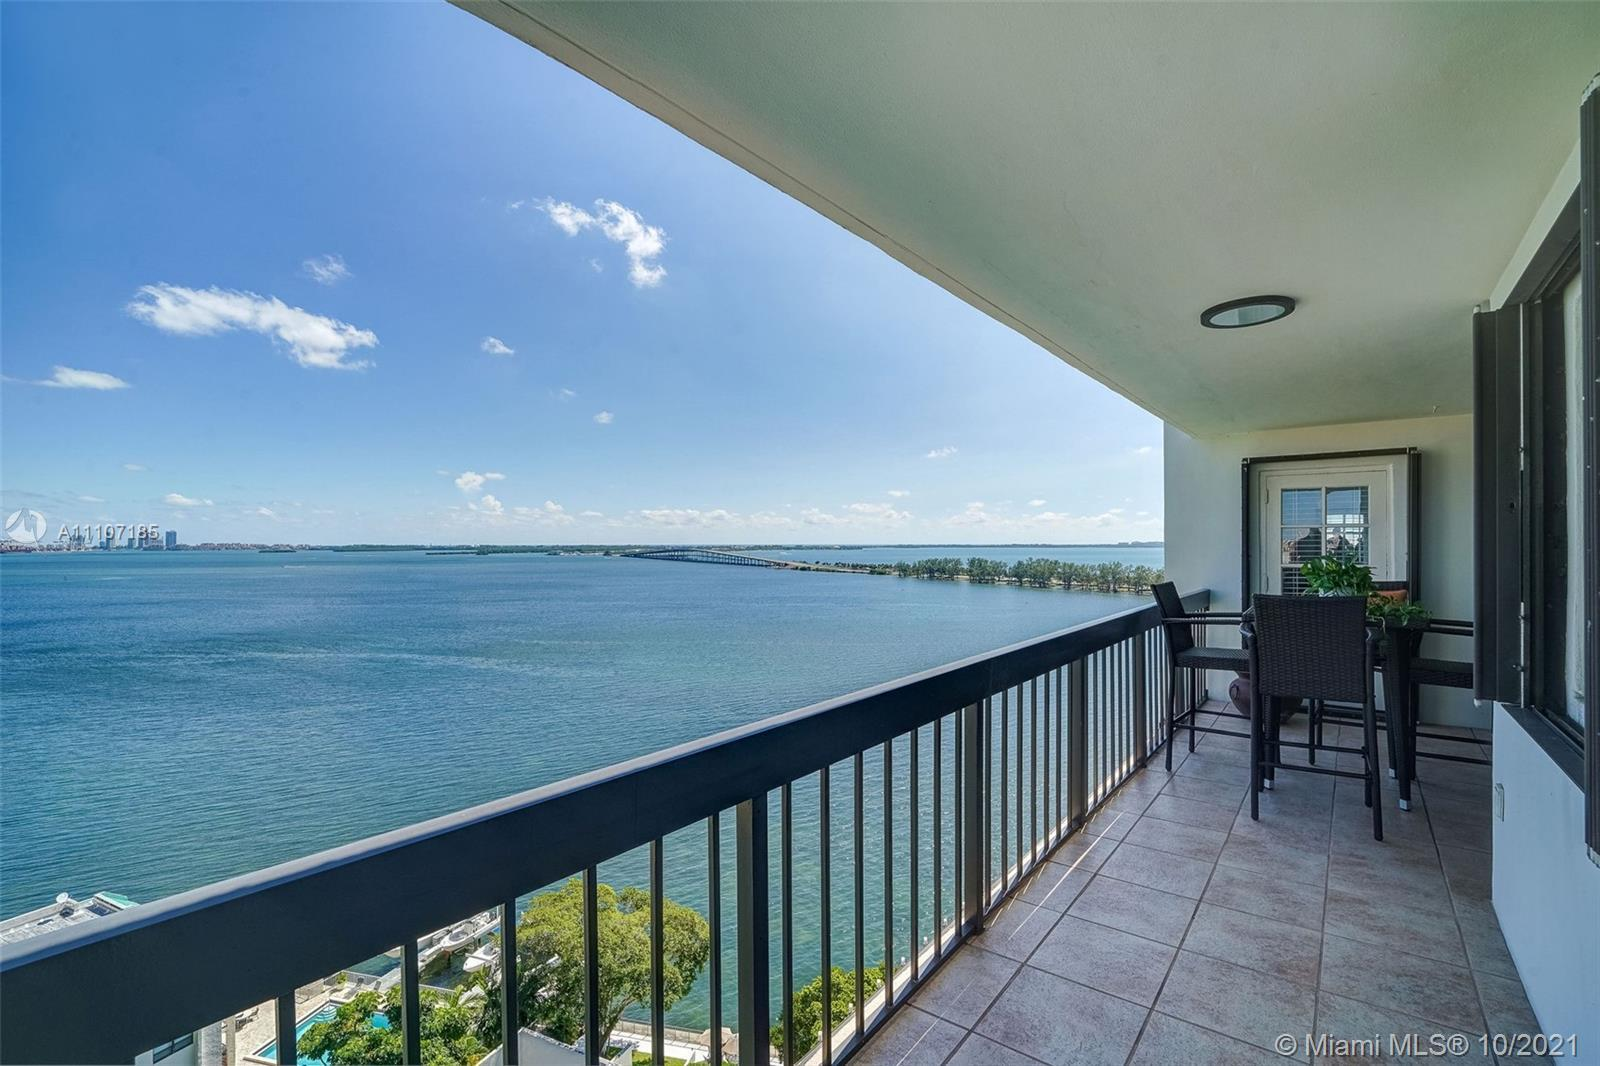 Spectacular water views from this large 2 bedroom condo in Brickell Bay Club. This split floor plan